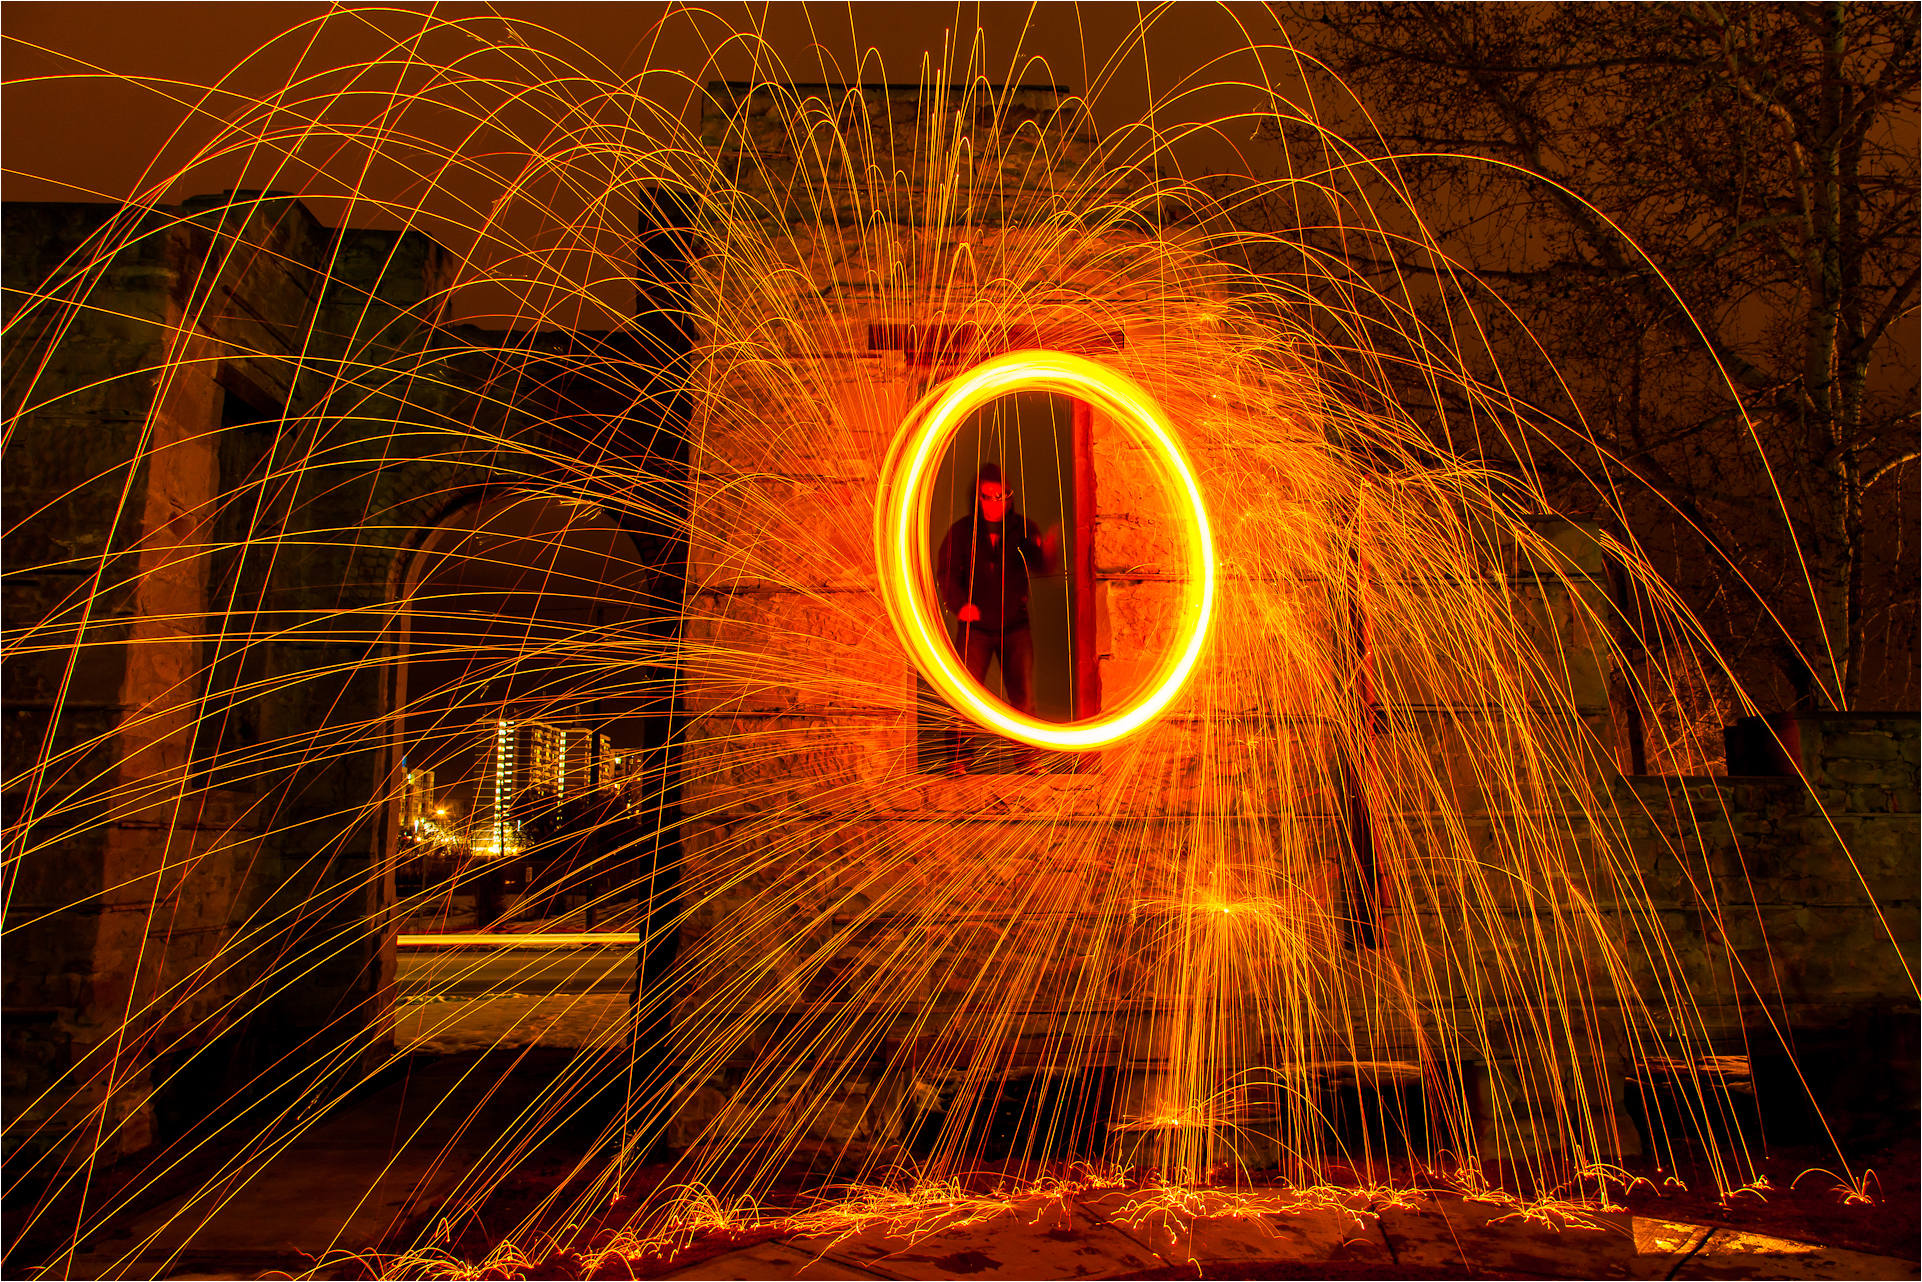 Fire circles and spark trails 2012 christopher martin 6282 3 - Add spark wall art picture lights ...